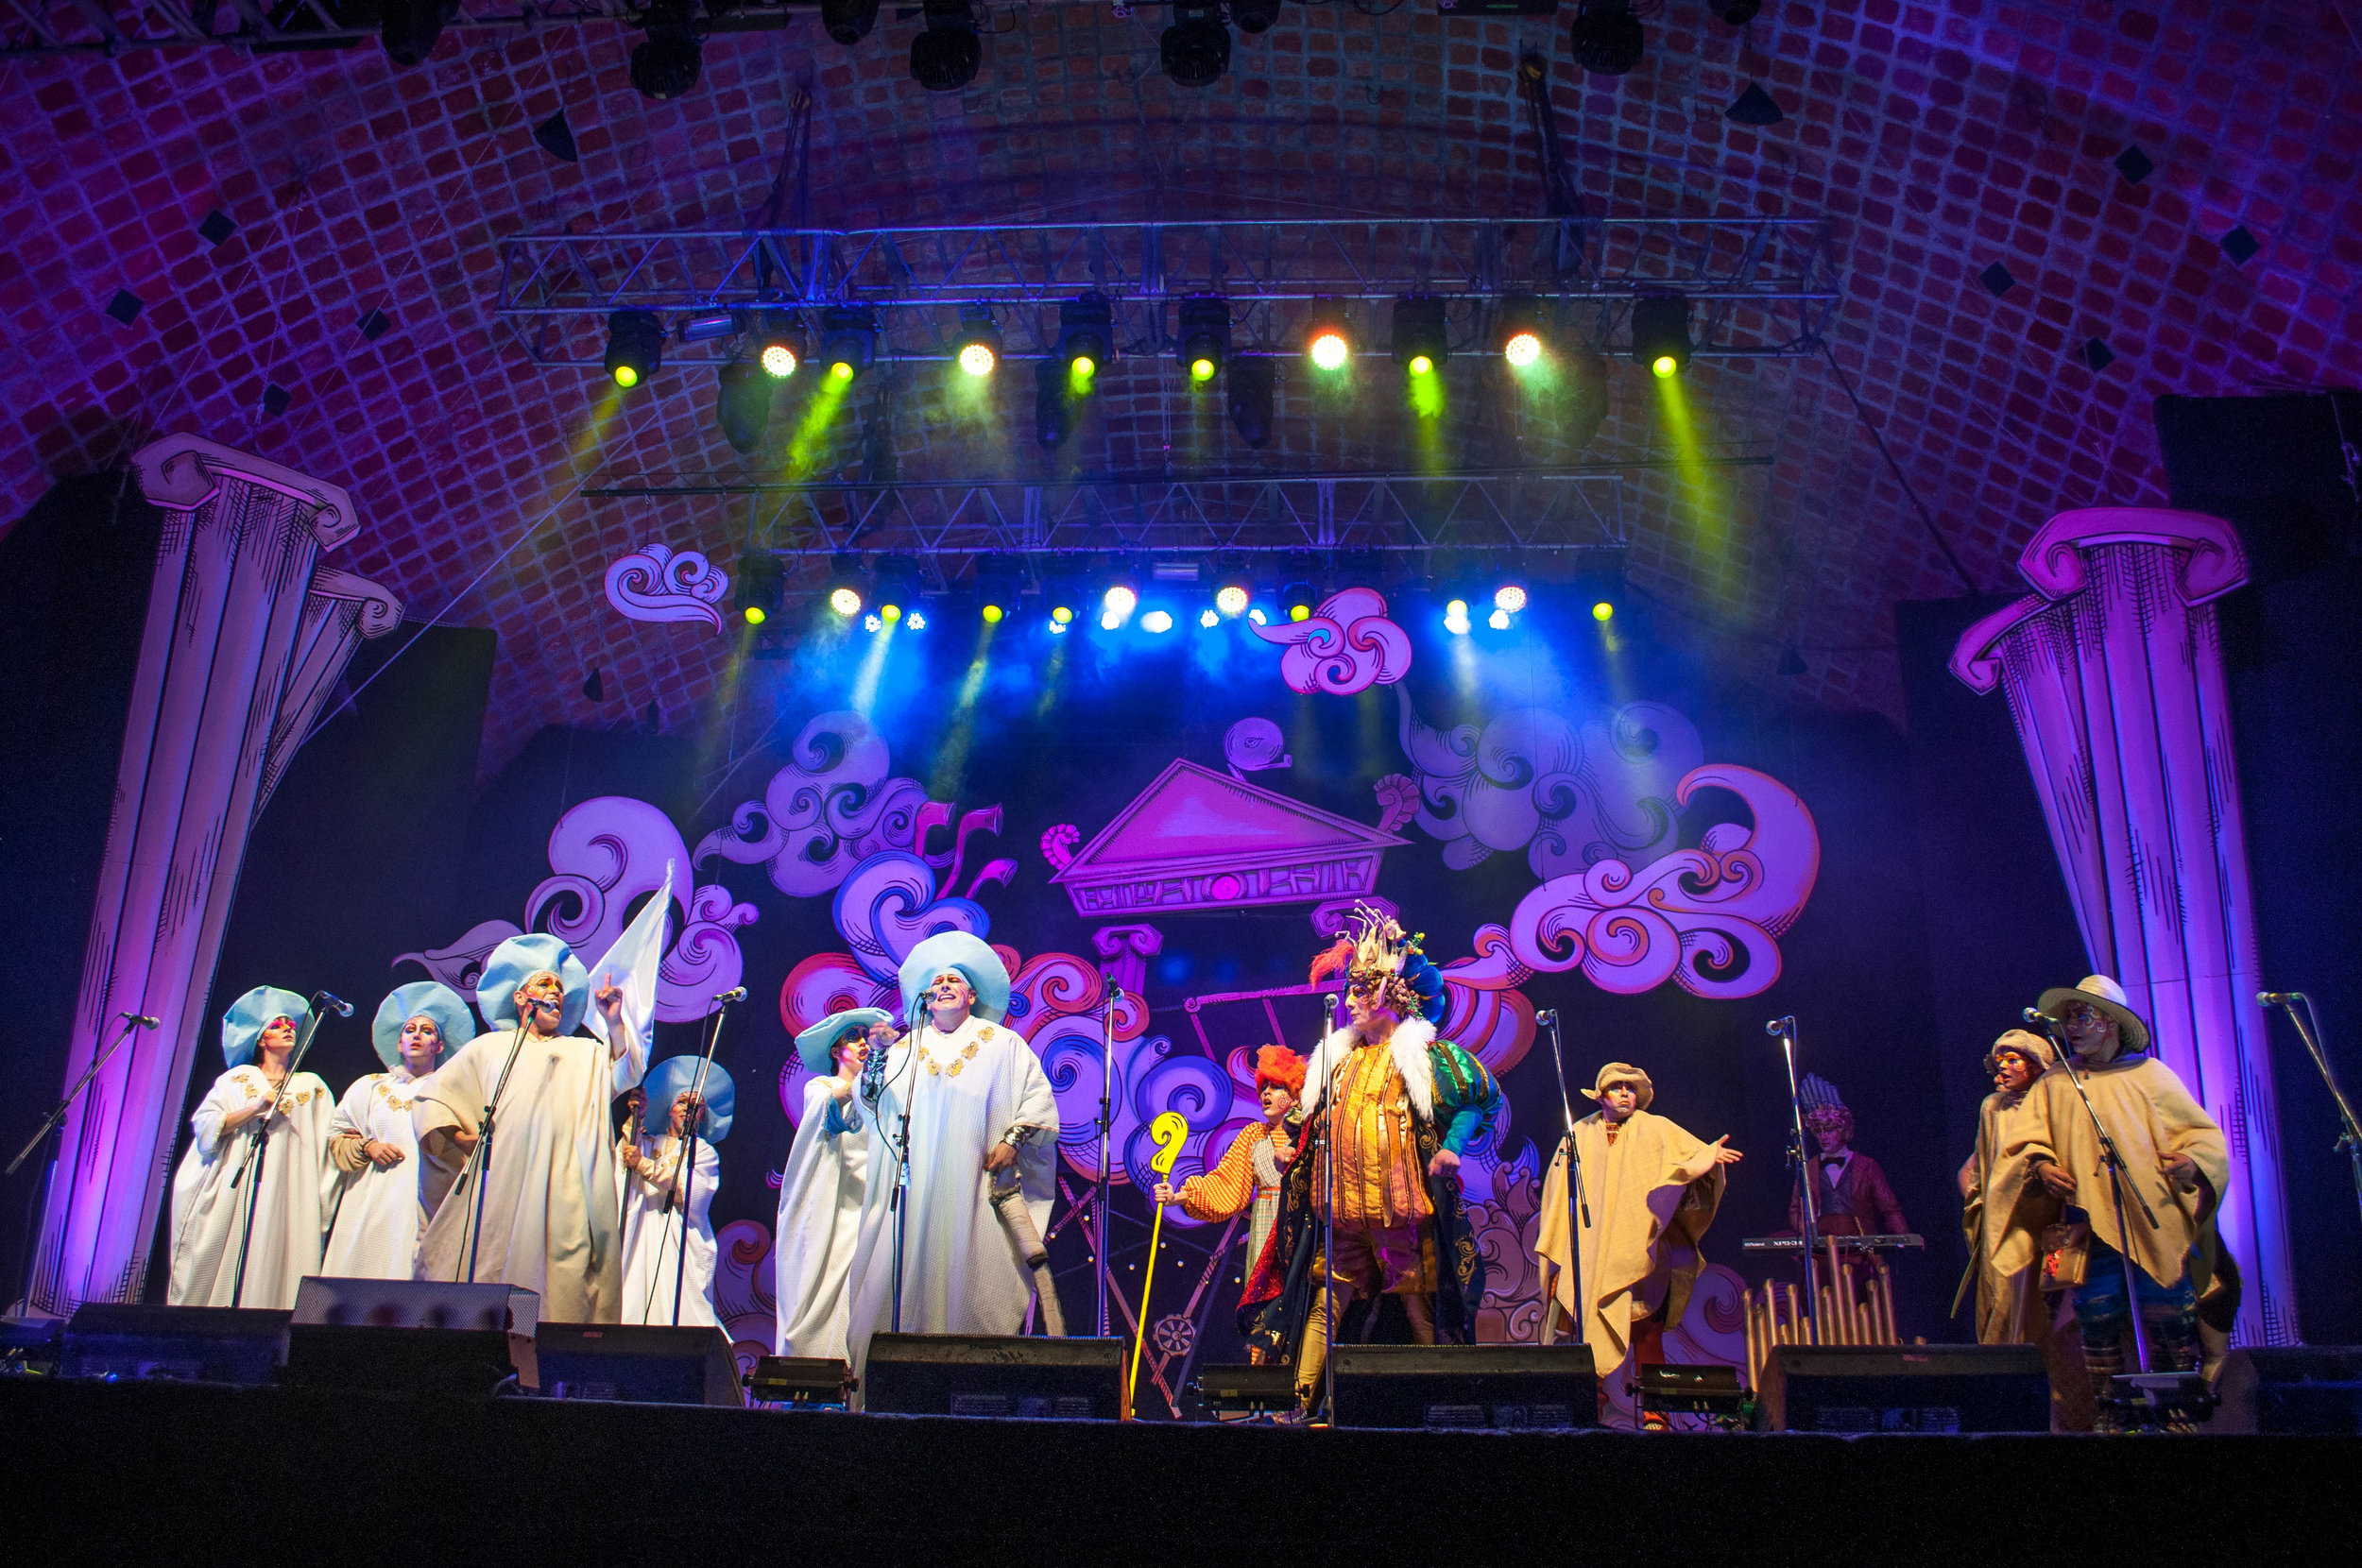 Murgas show in Montevideo. Part of the Uruguayan carnival. Things to do in Montevideo